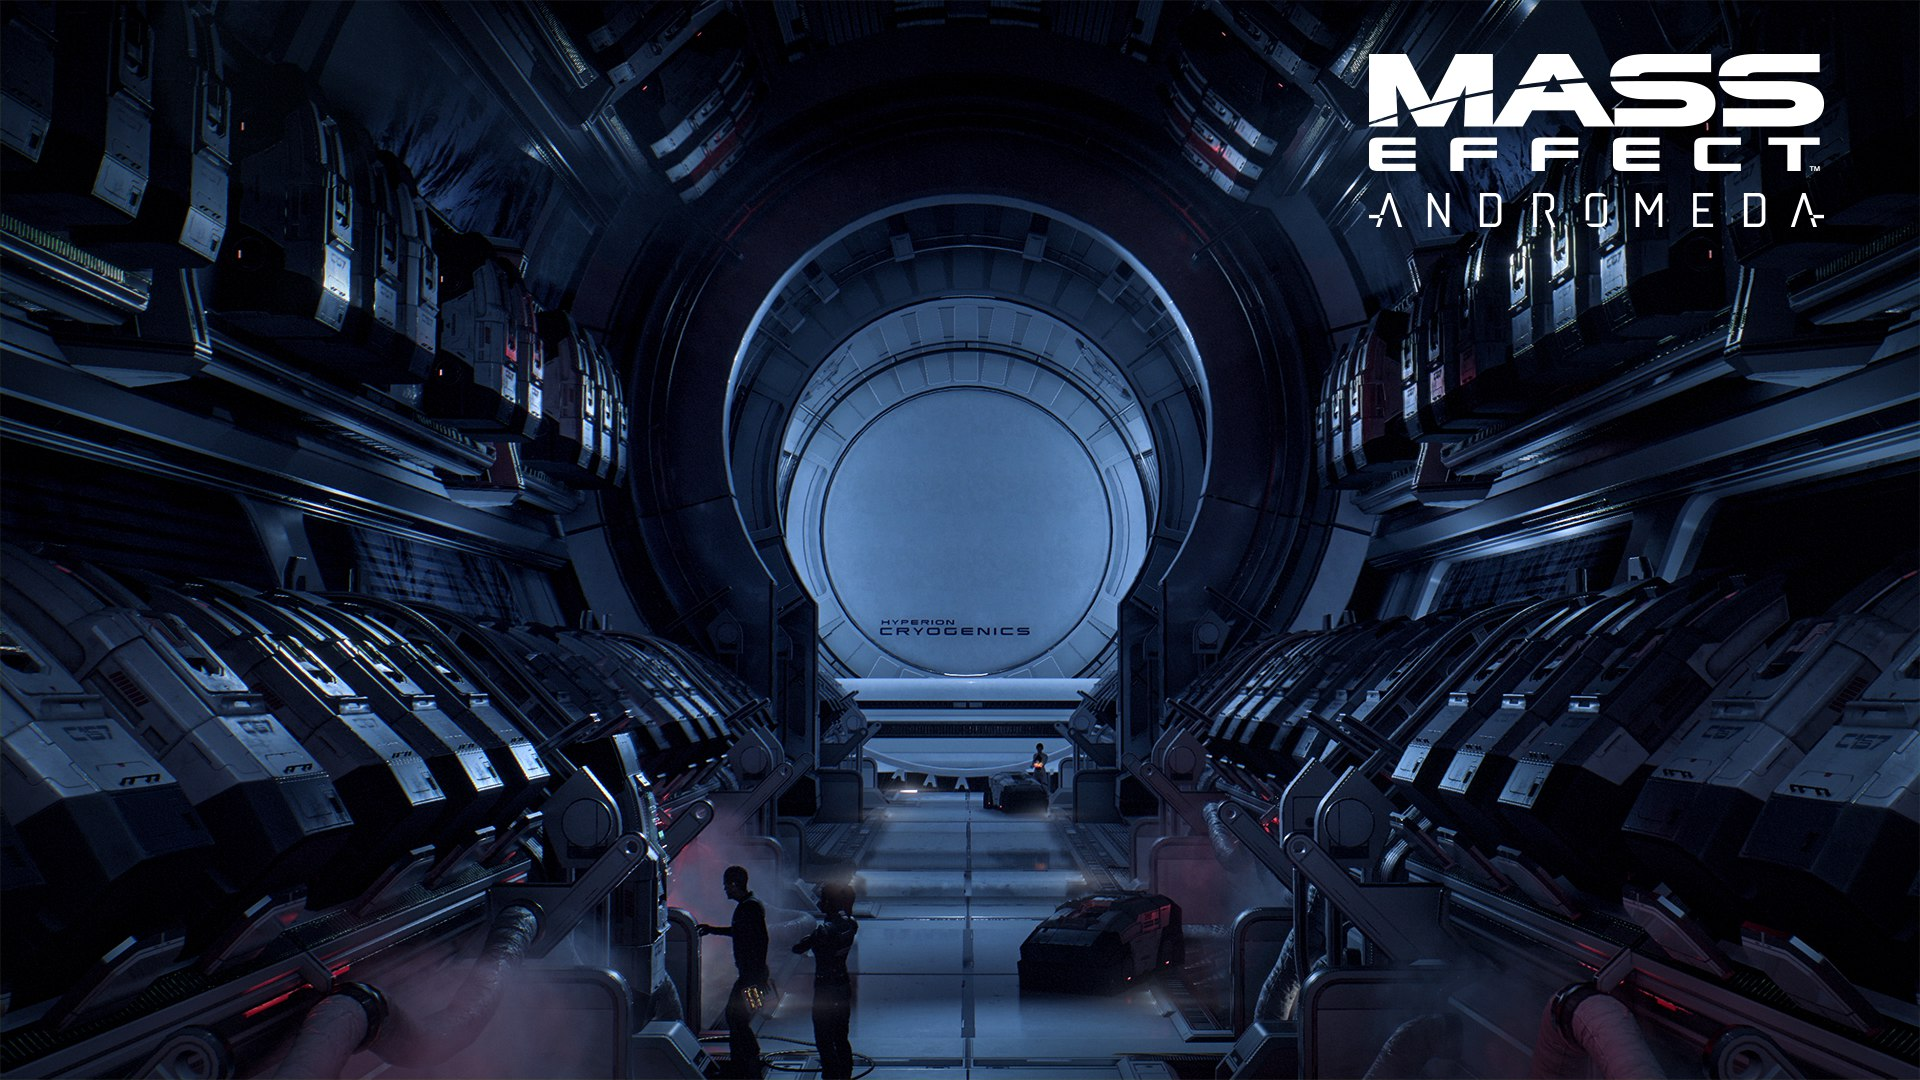 Mass Effect Andromeda Full Hd 3d Wallpapers: Mass Effect: Andromeda Wallpapers, Pictures, Images